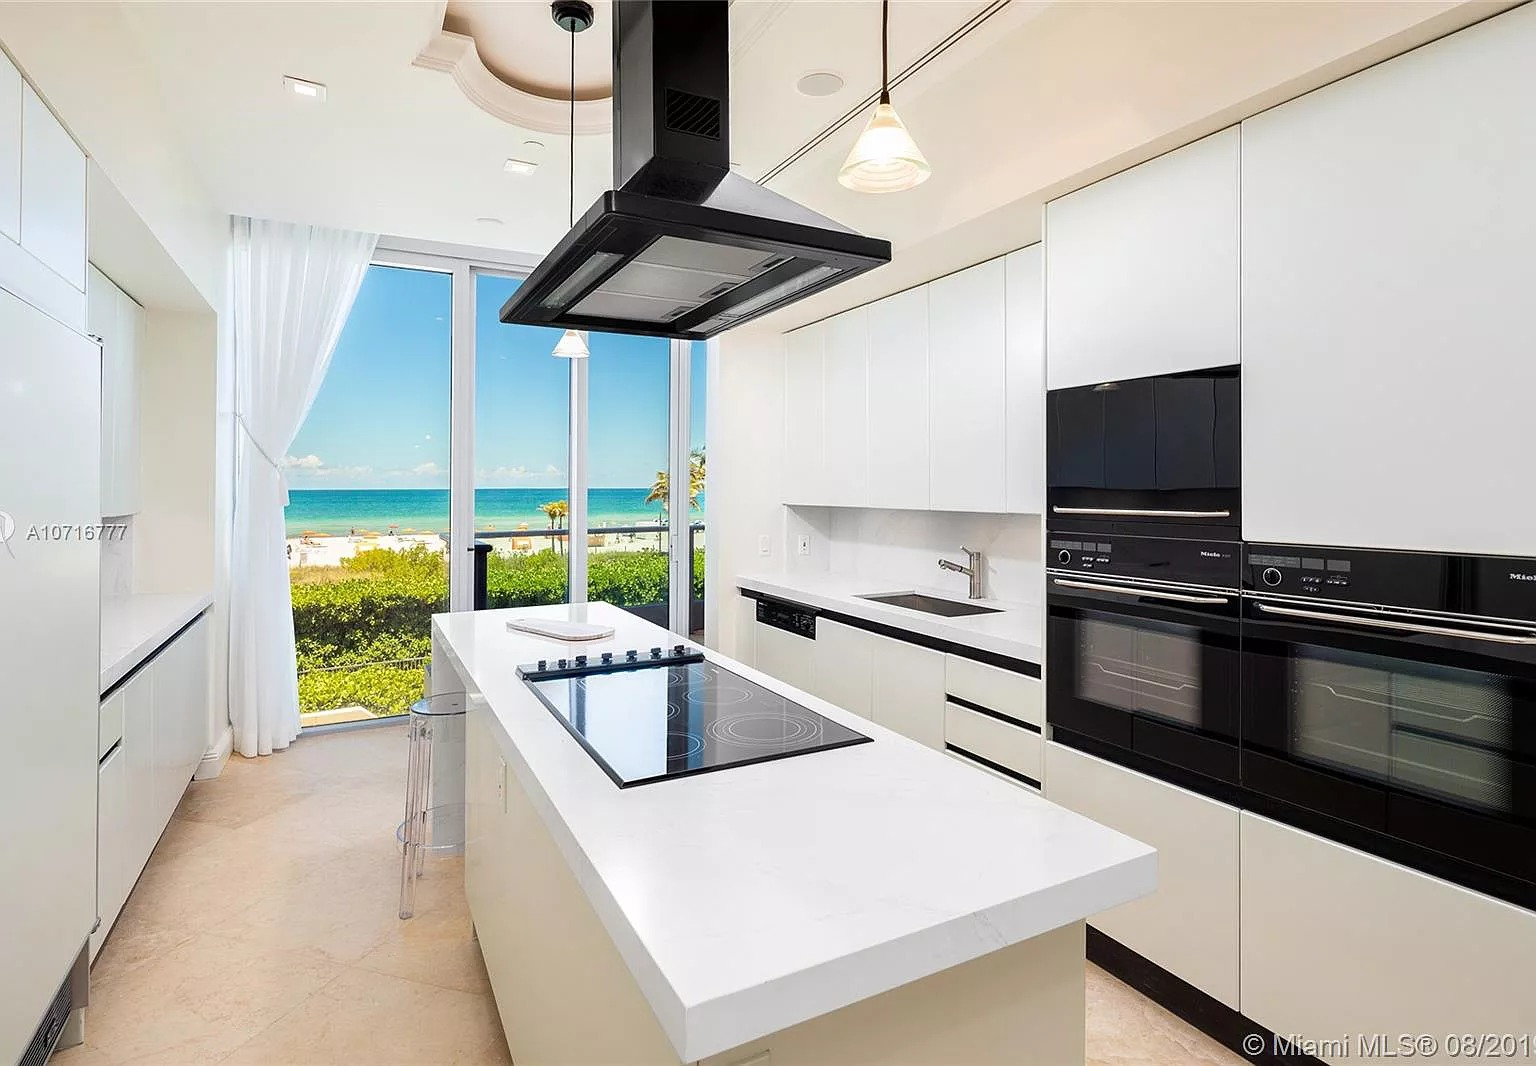 1455 Ocean Dr # BH-02, Miami Beach, FL 33139 - $6,750,000 home for sale, house images, photos and pics gallery